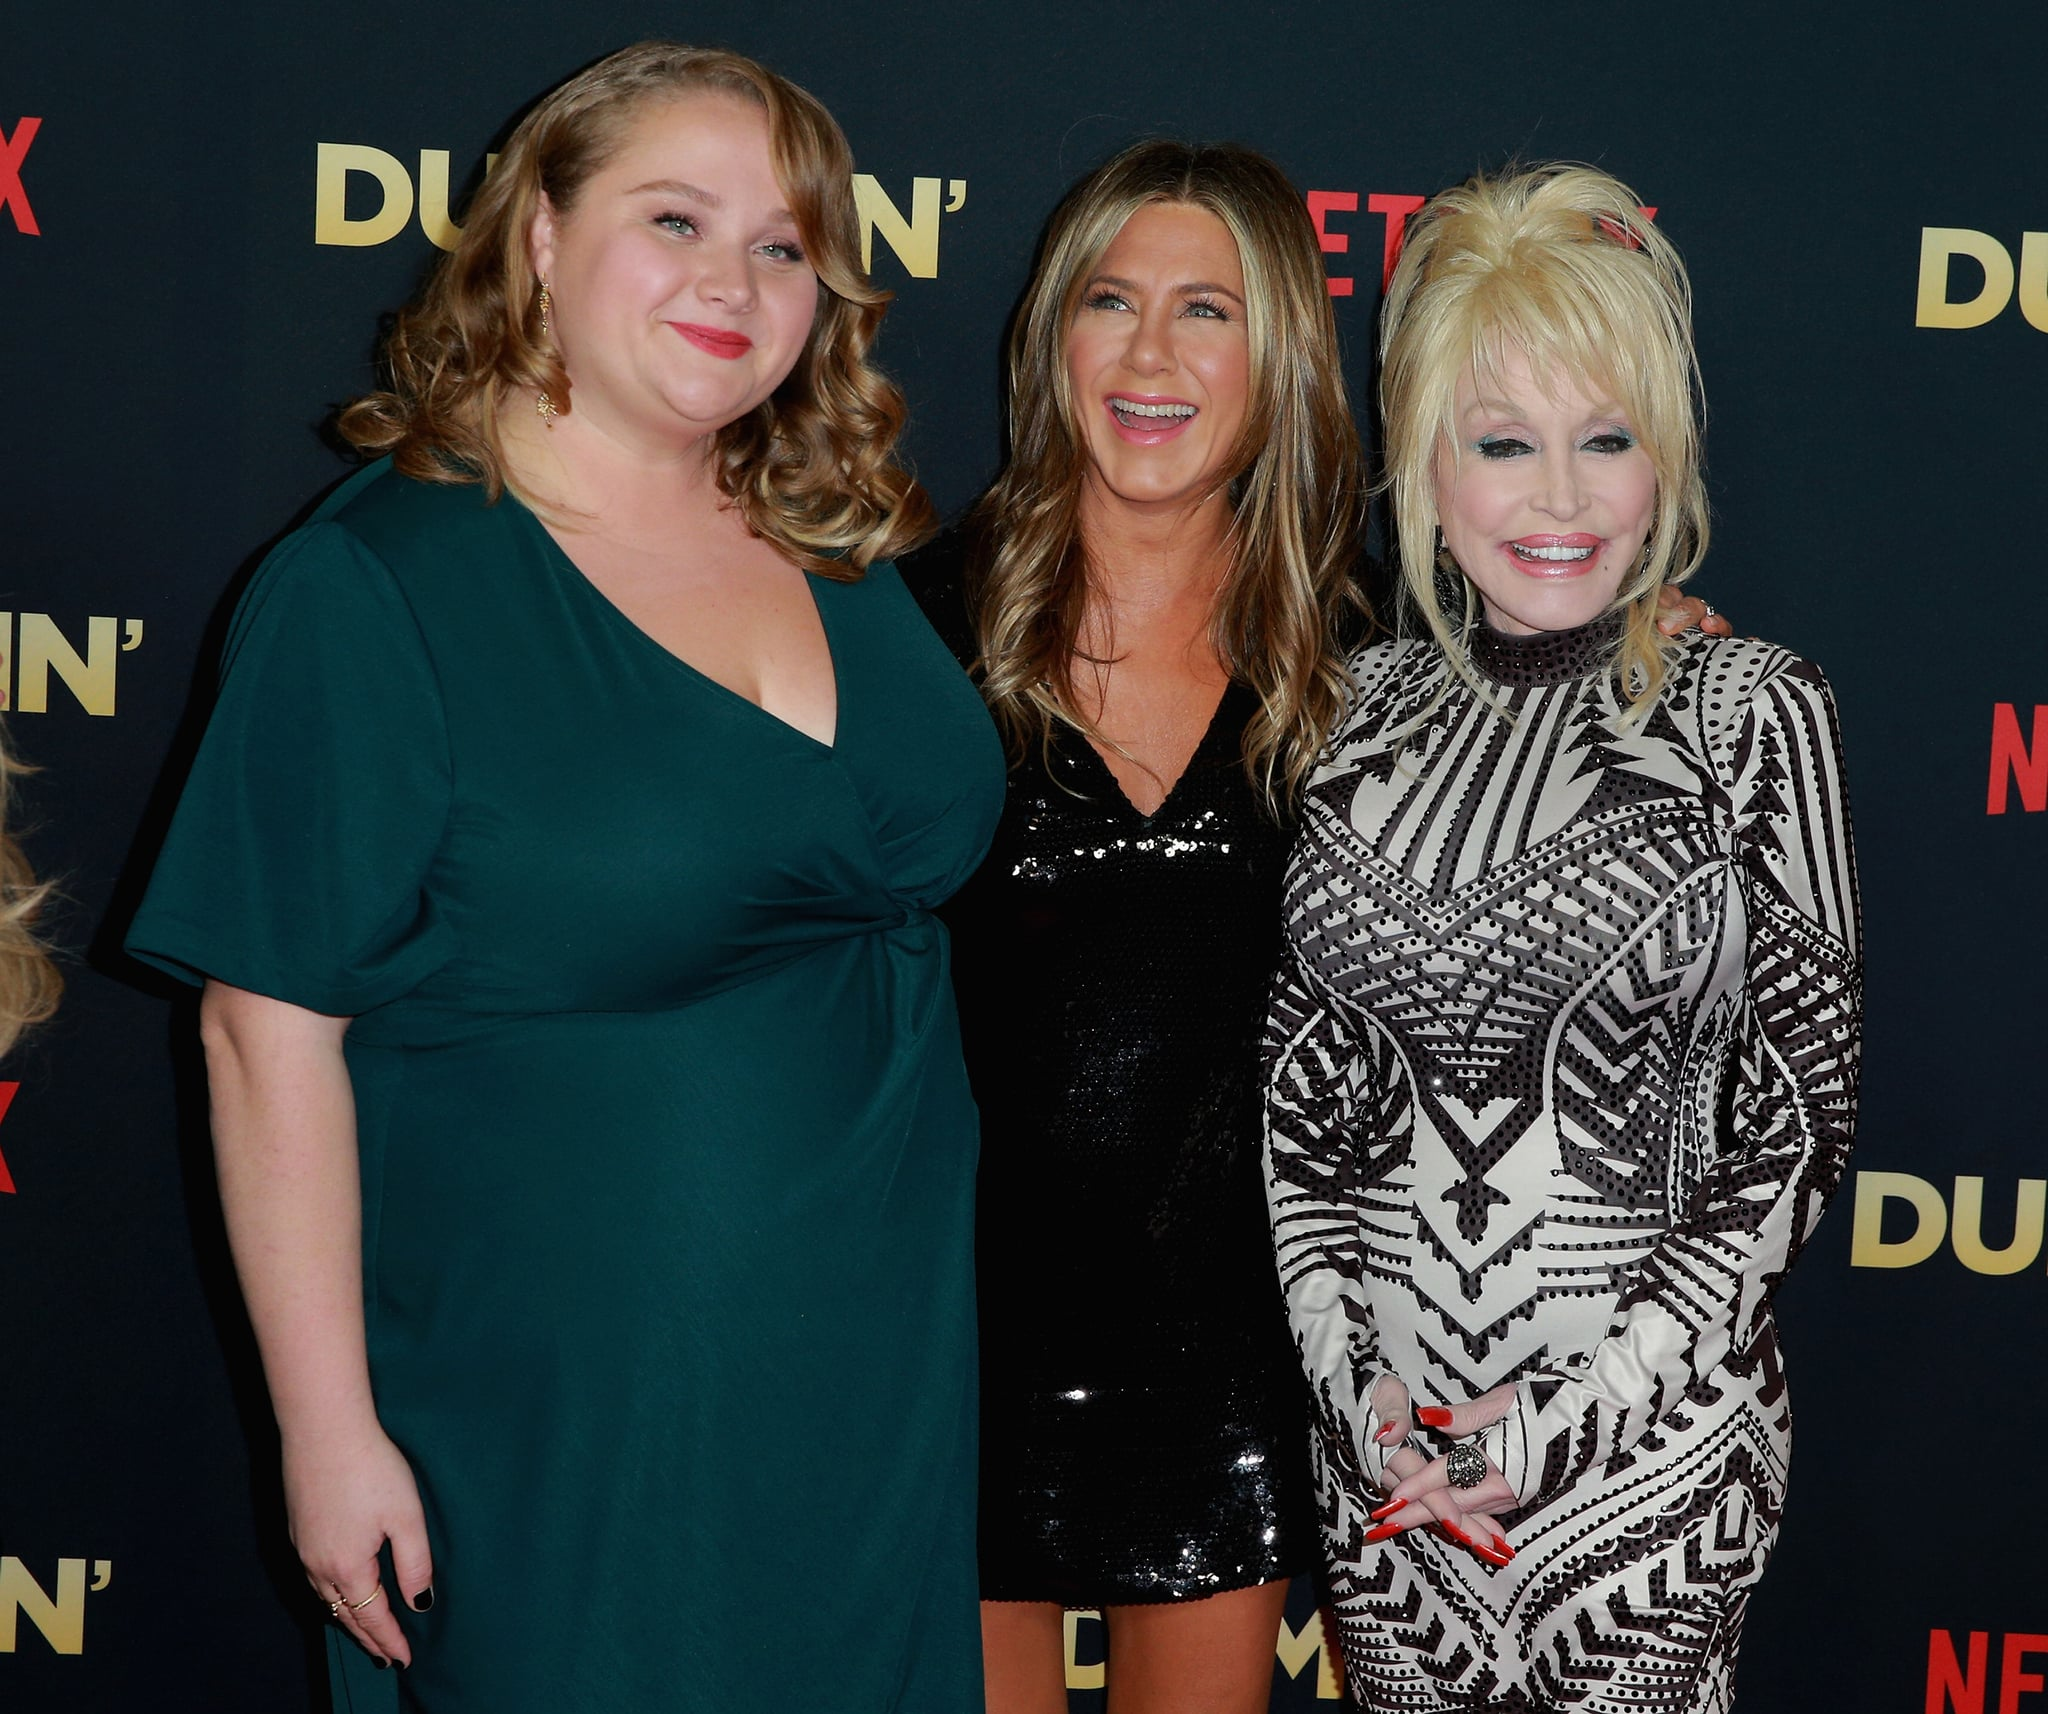 HOLLYWOOD, CA - DECEMBER 06:  Actors Danielle Macdonald and Jennifer Aniston and singer Dolly Parton attend the premiere of Netflix's